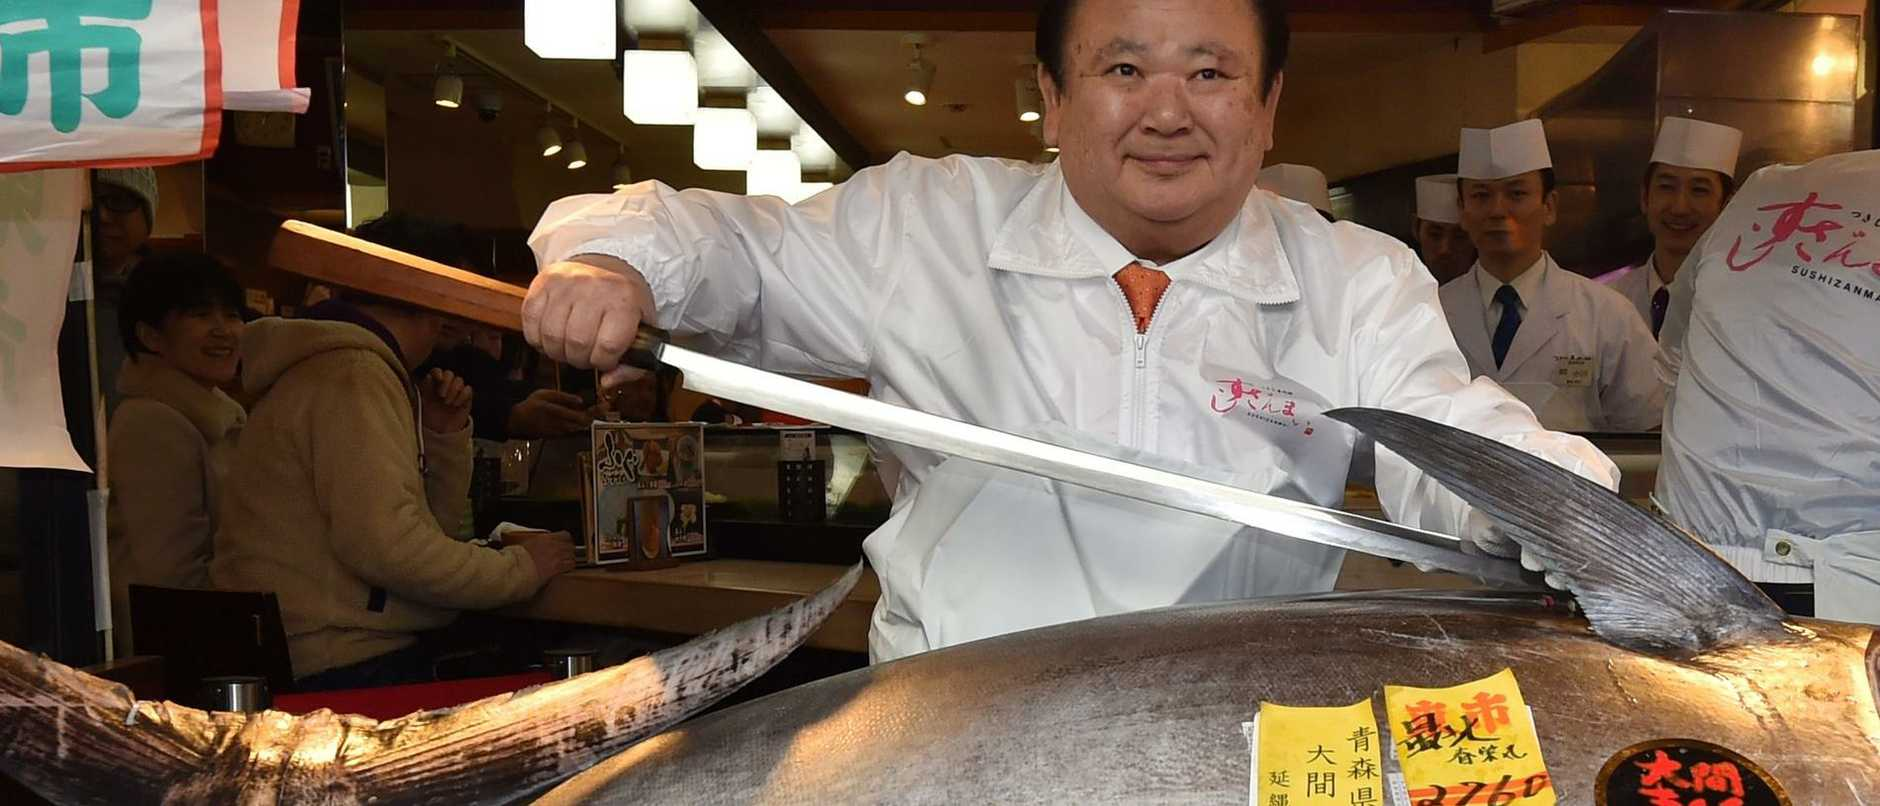 "Self-described ""Tuna King"" Kiyoshi Kimura on Sunday forked over 193 million yen – roughly $1.8 million – for a 276kg bluefin tuna at Tokyo's Toyosu fish market, according to the Japan Times."